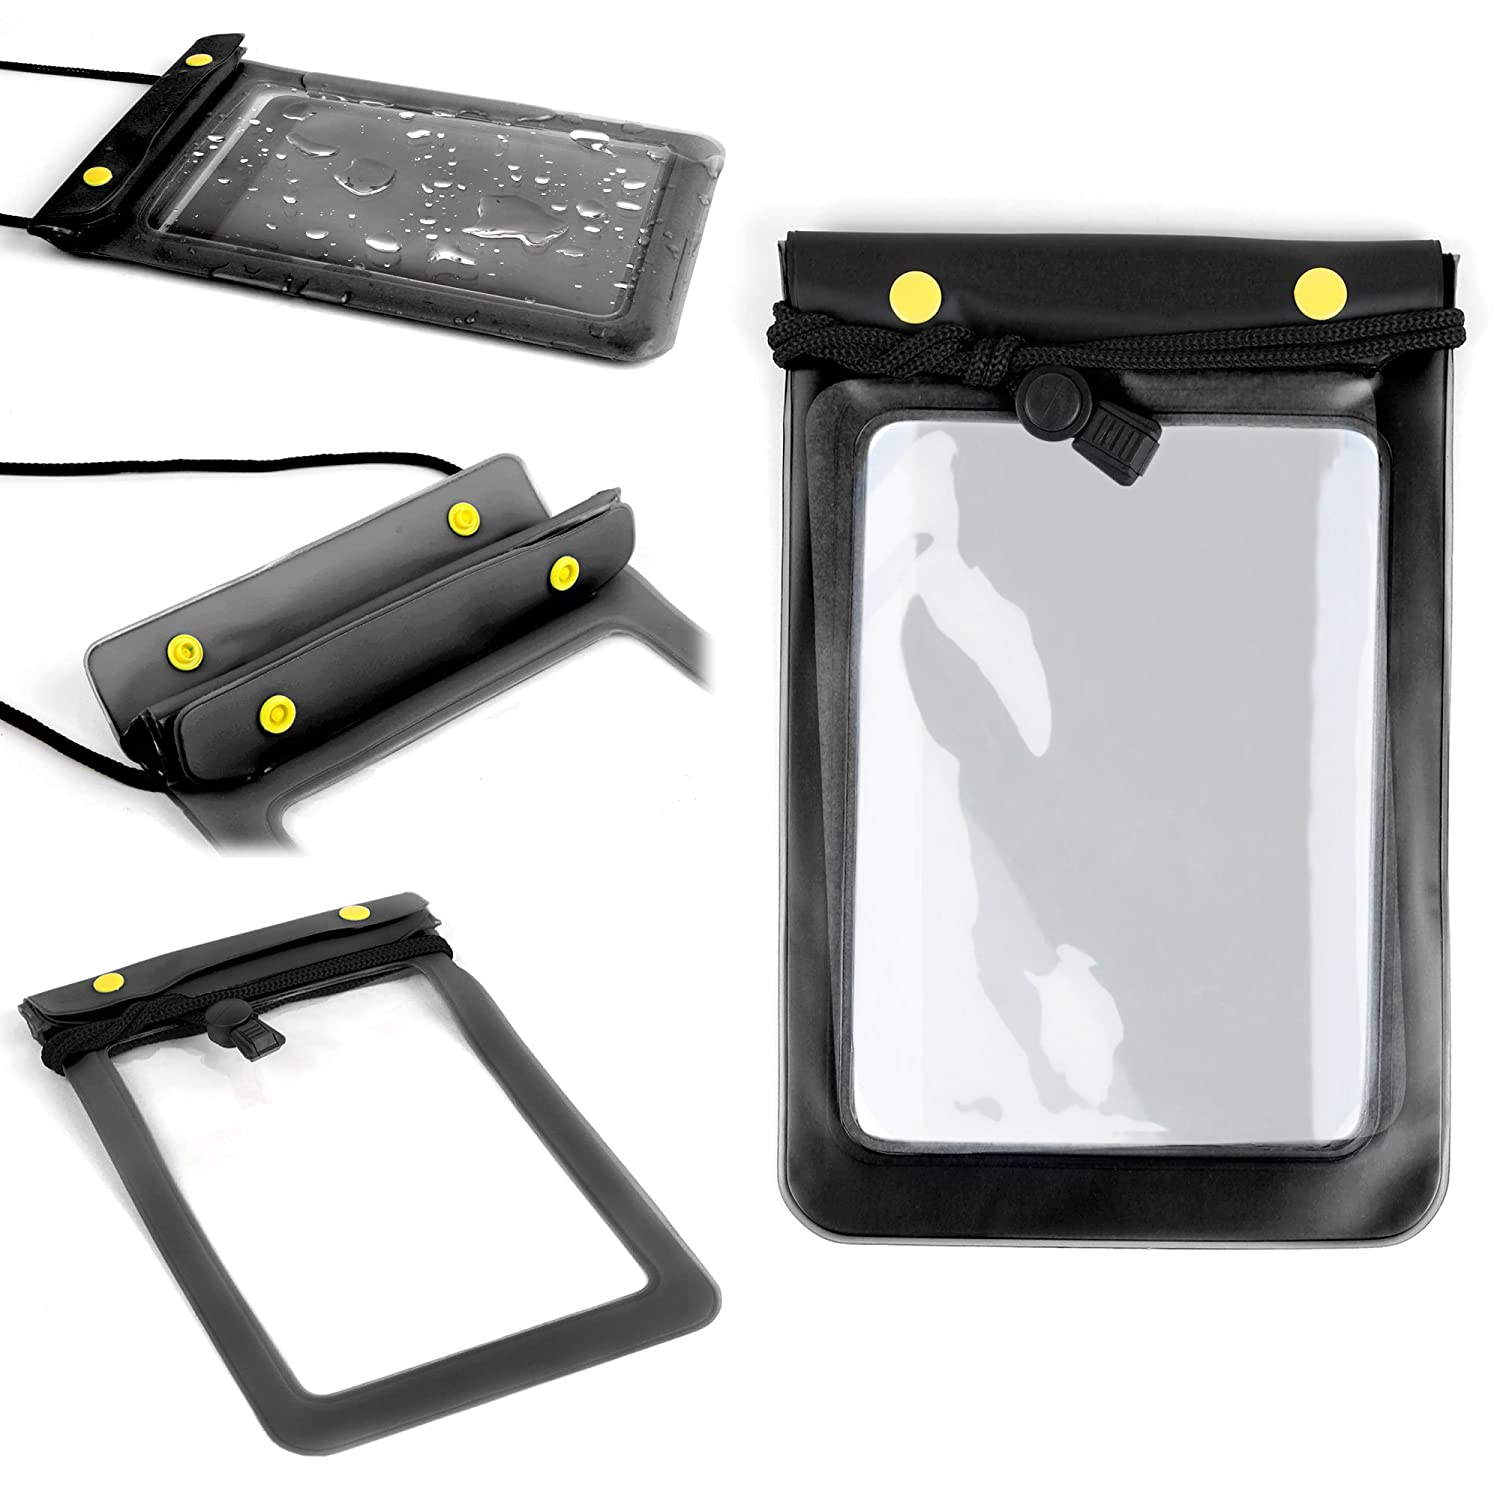 DURAGADGETブラック防水すべて目的Protective Carry Case withネックストラップfor Visual Land Prestige 7l 7